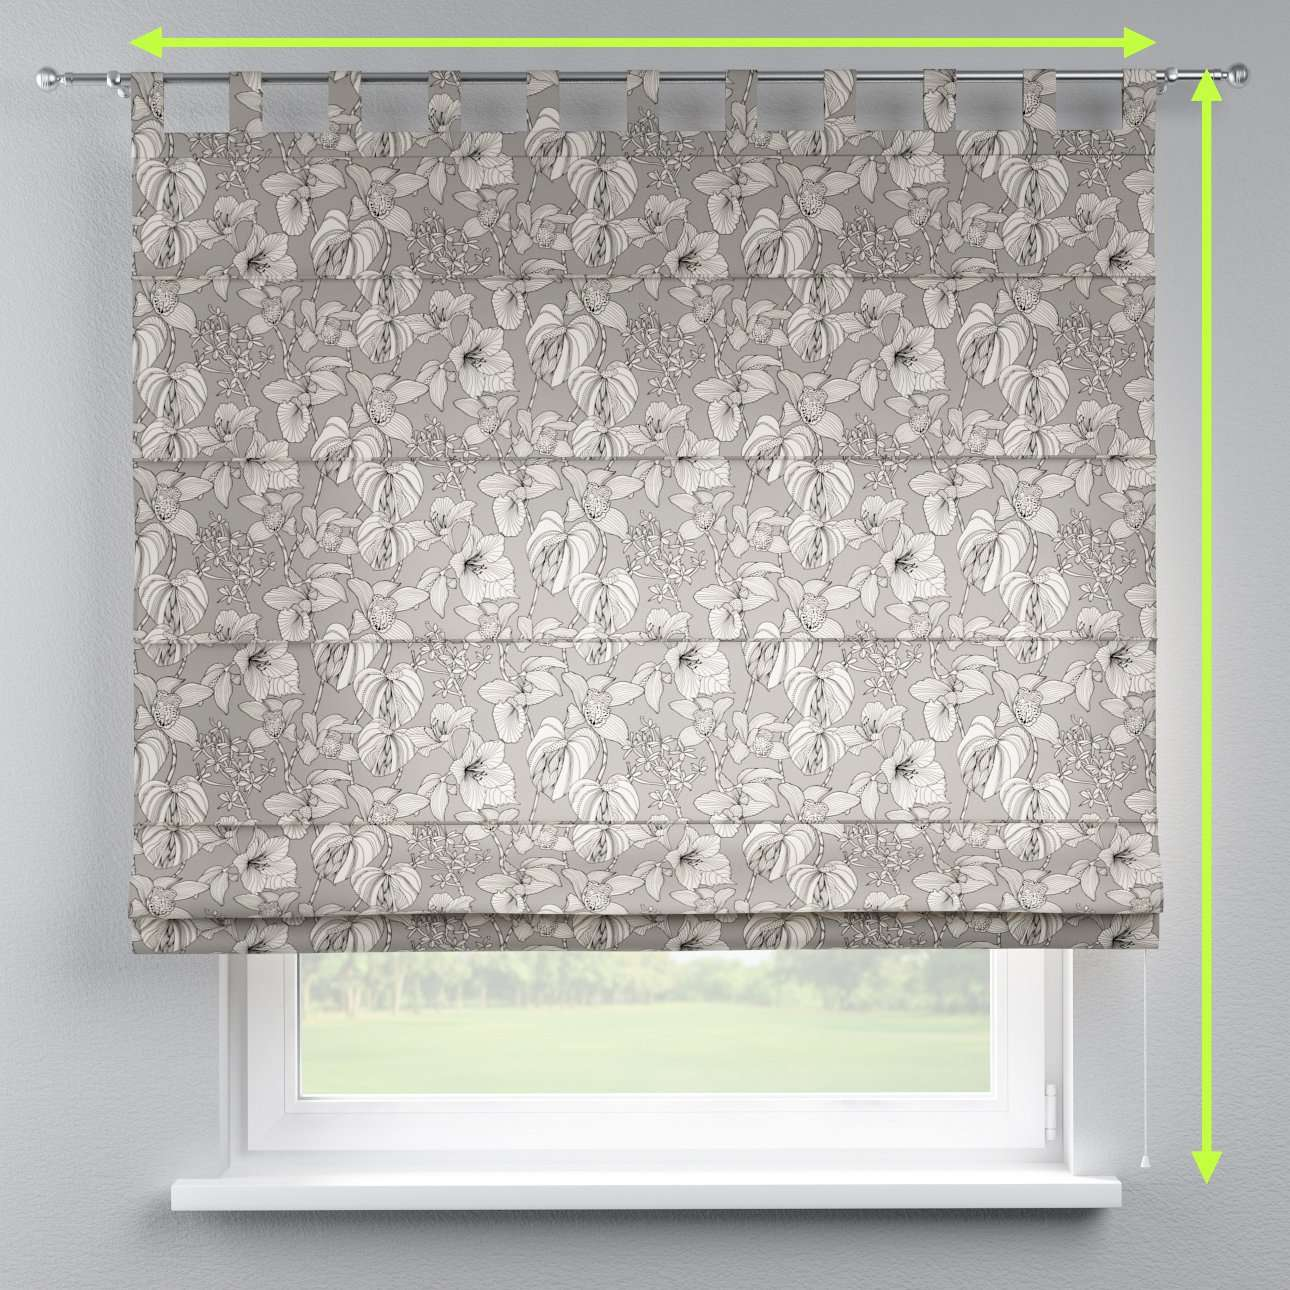 Verona tab top roman blind in collection Brooklyn, fabric: 137-80